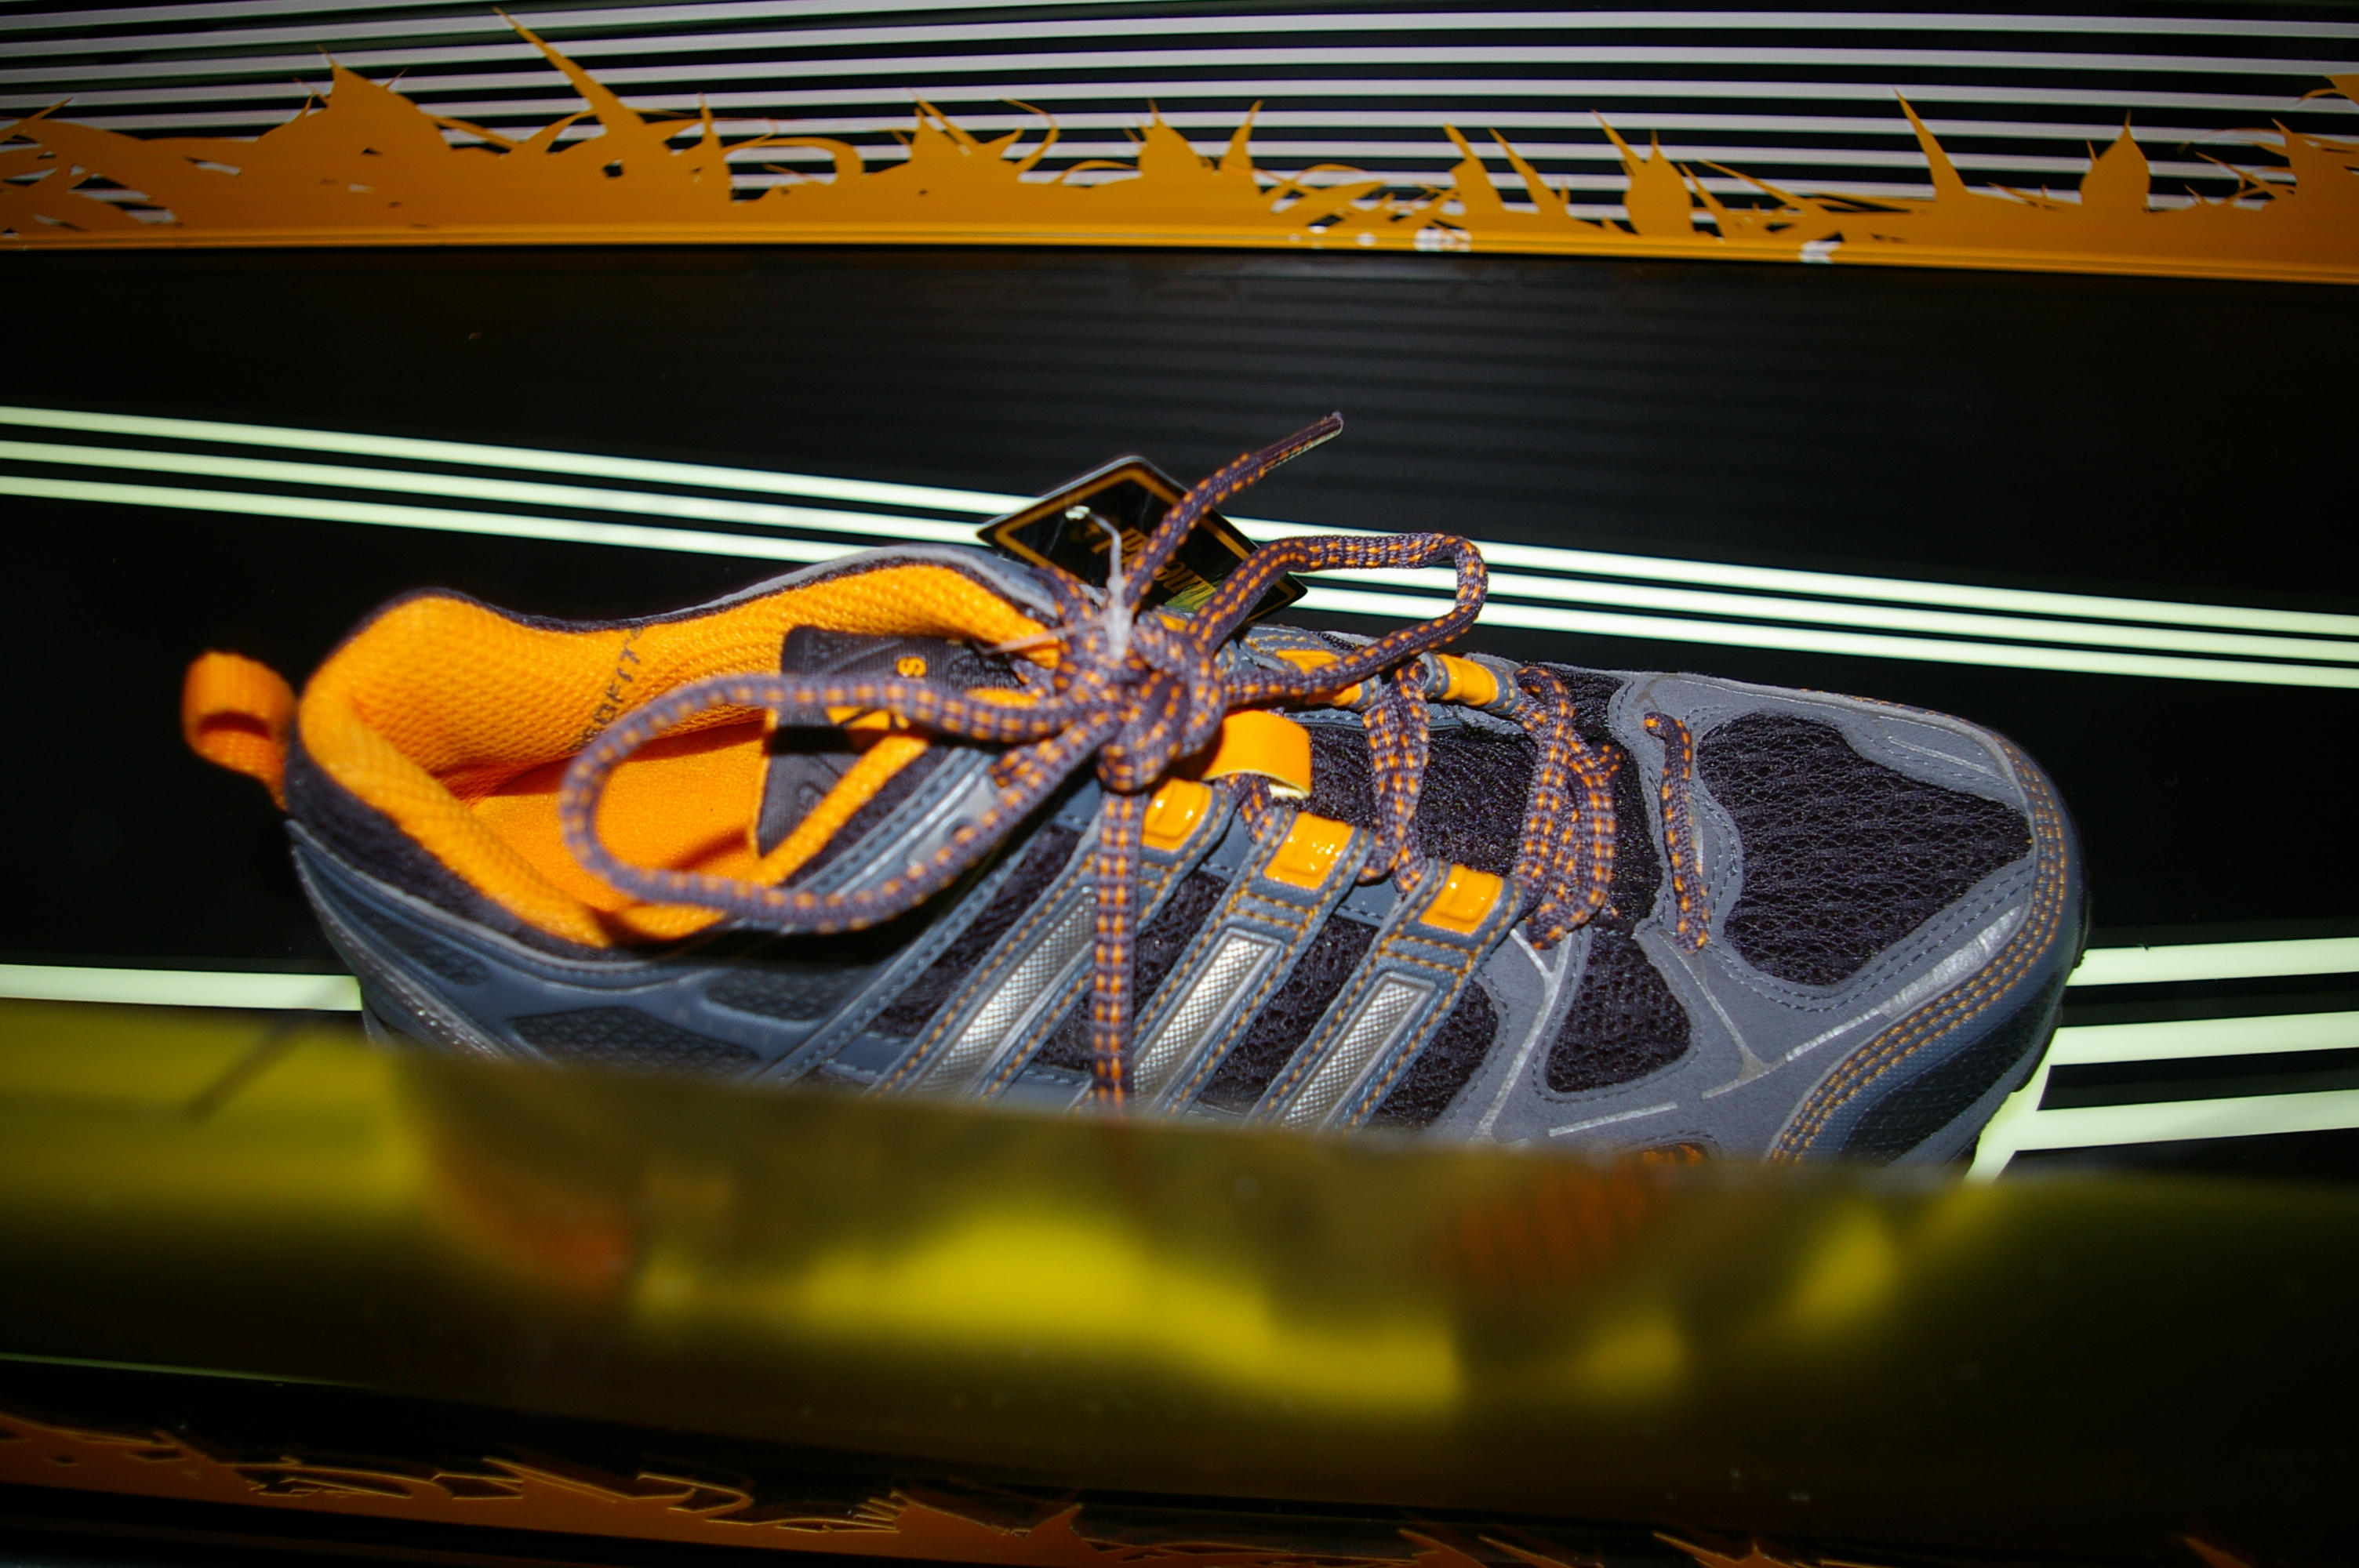 Adidas uses rubber from Continental cars tyres in a trail shoe